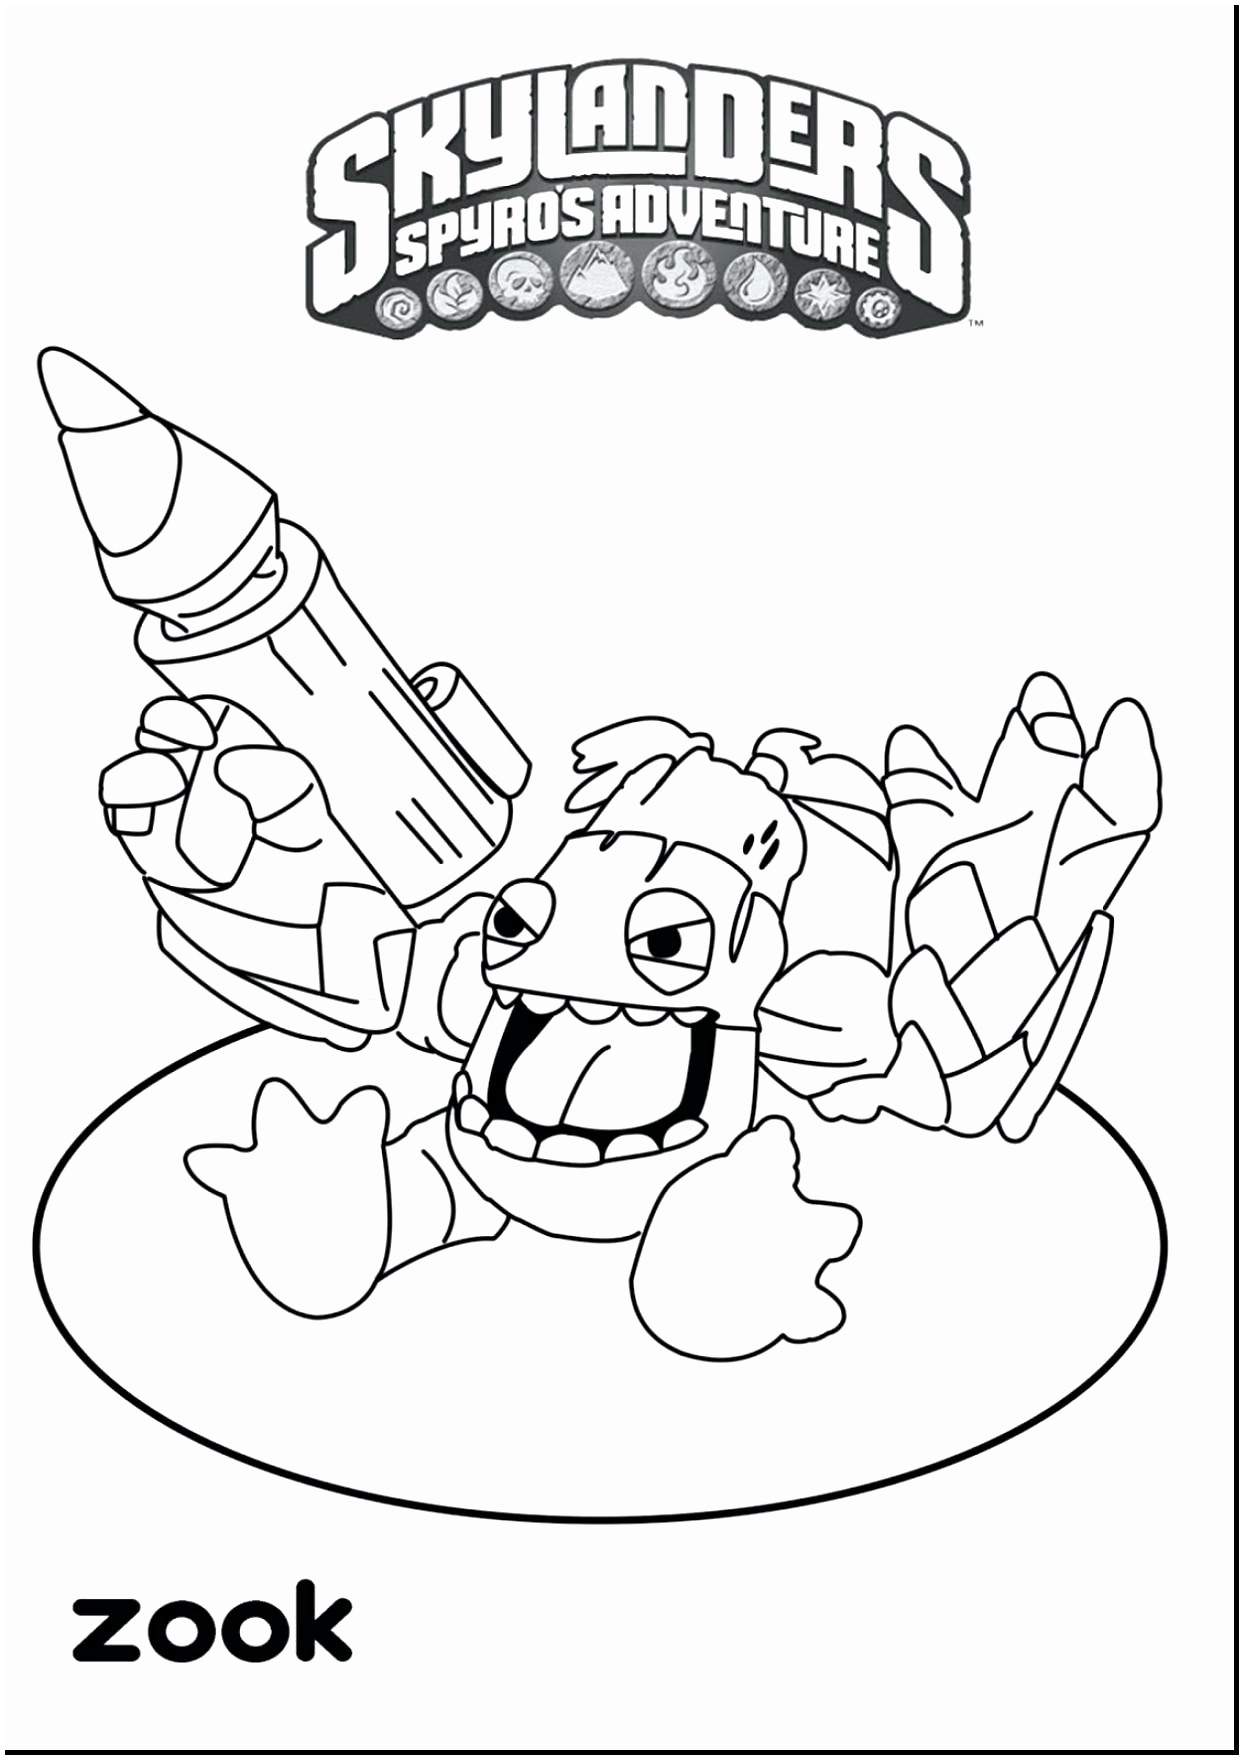 bible coloring pages free Collection-Best Od Dog Coloring Pages Free Colouring Pages Fun Time Baby Boy Bible 5-r